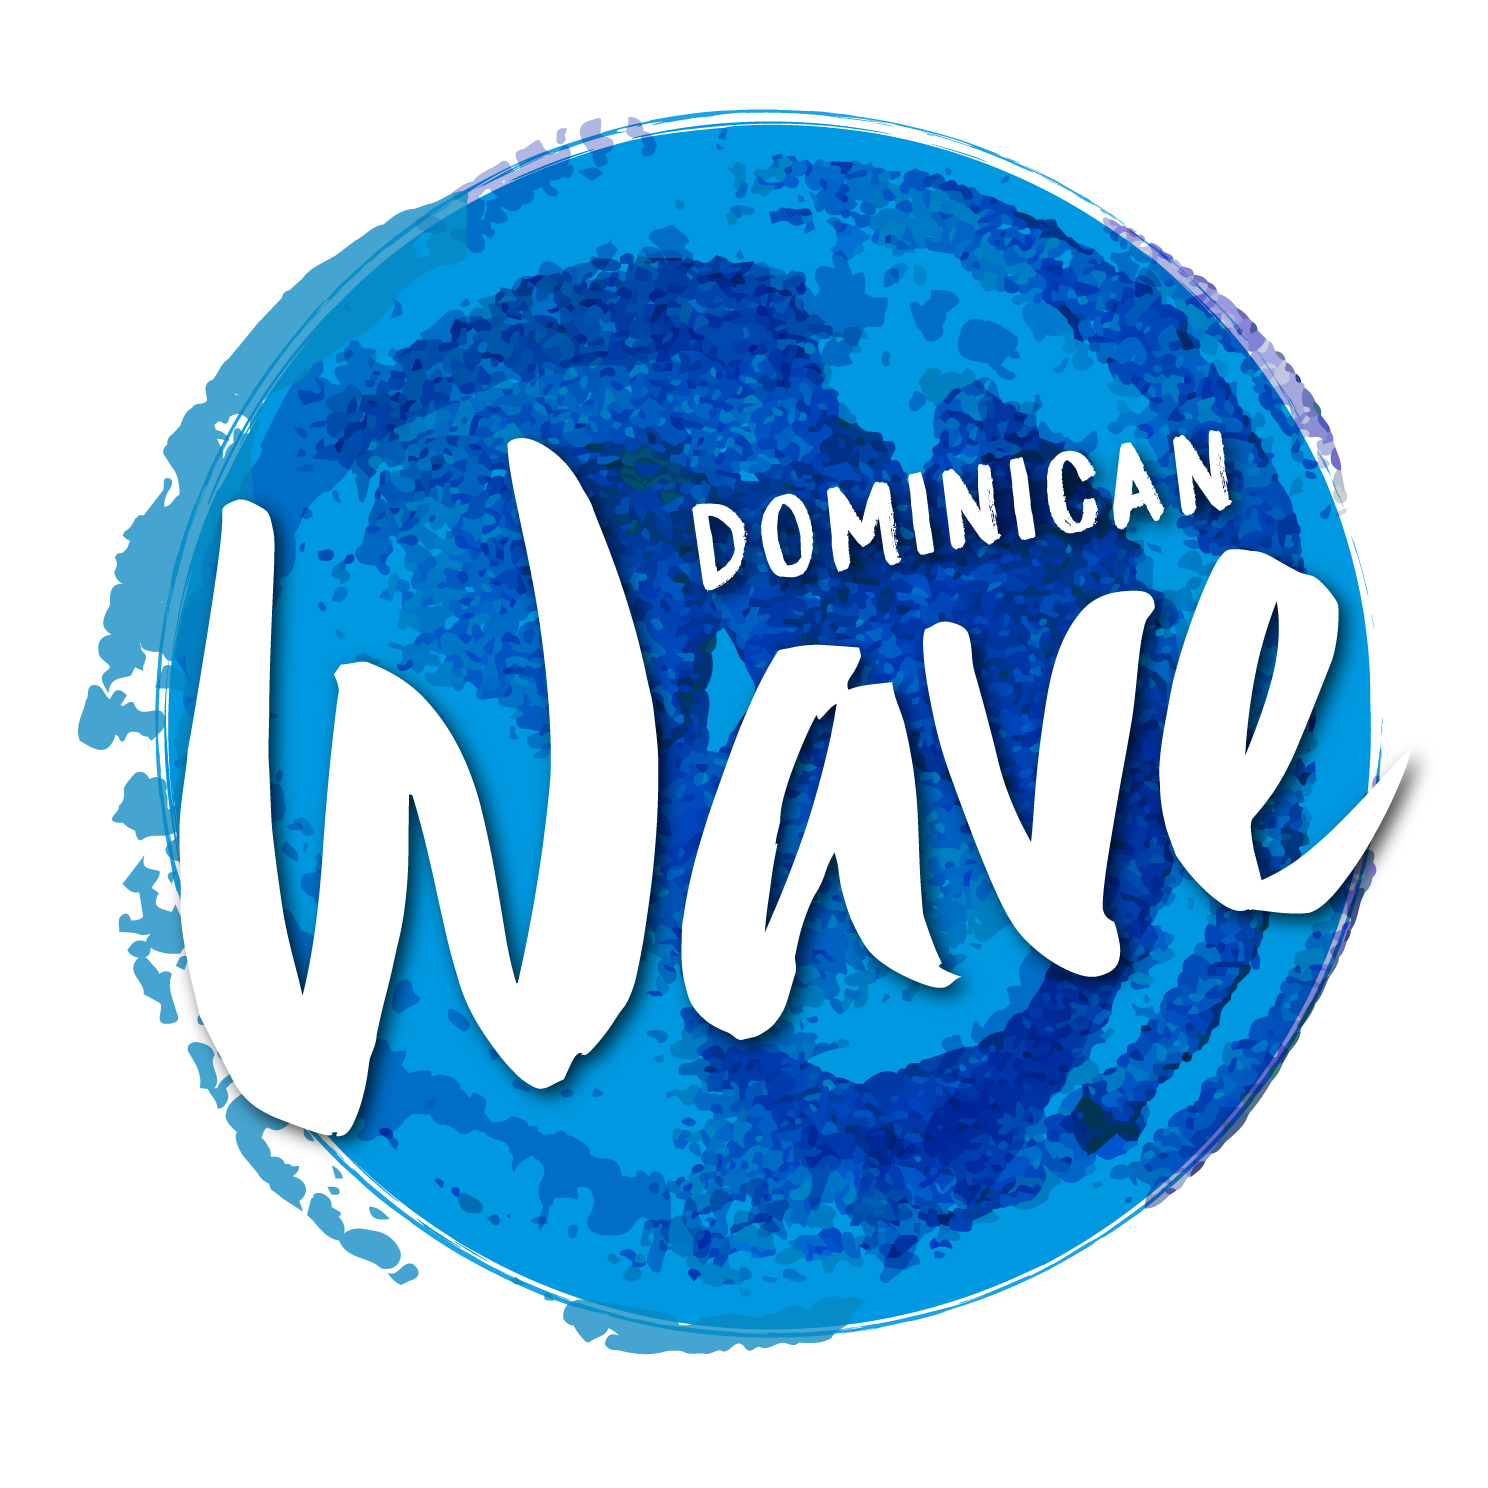 Dominican Wave